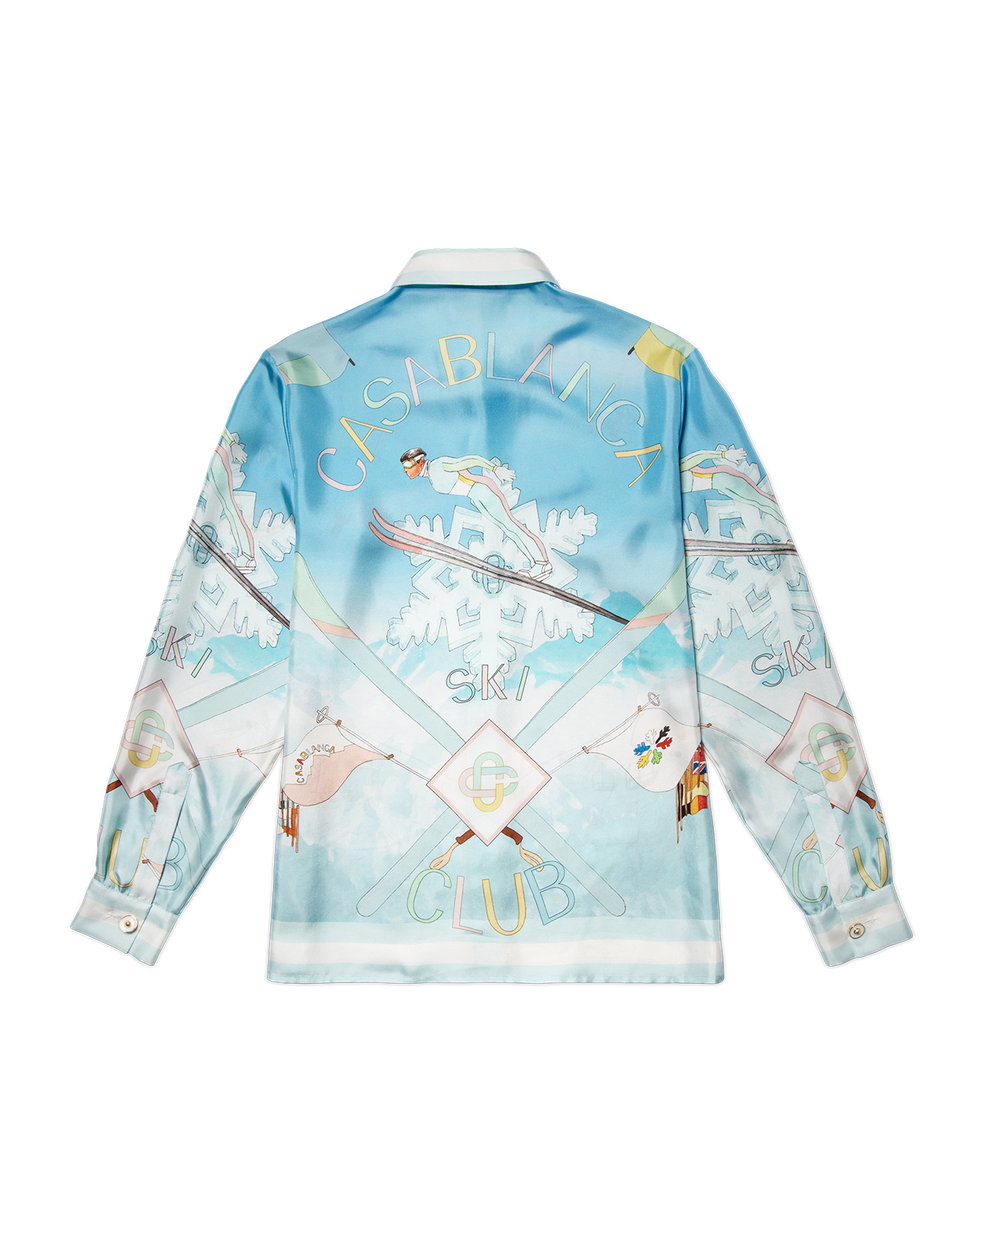 Casablanca Ski Club Silk Shirt